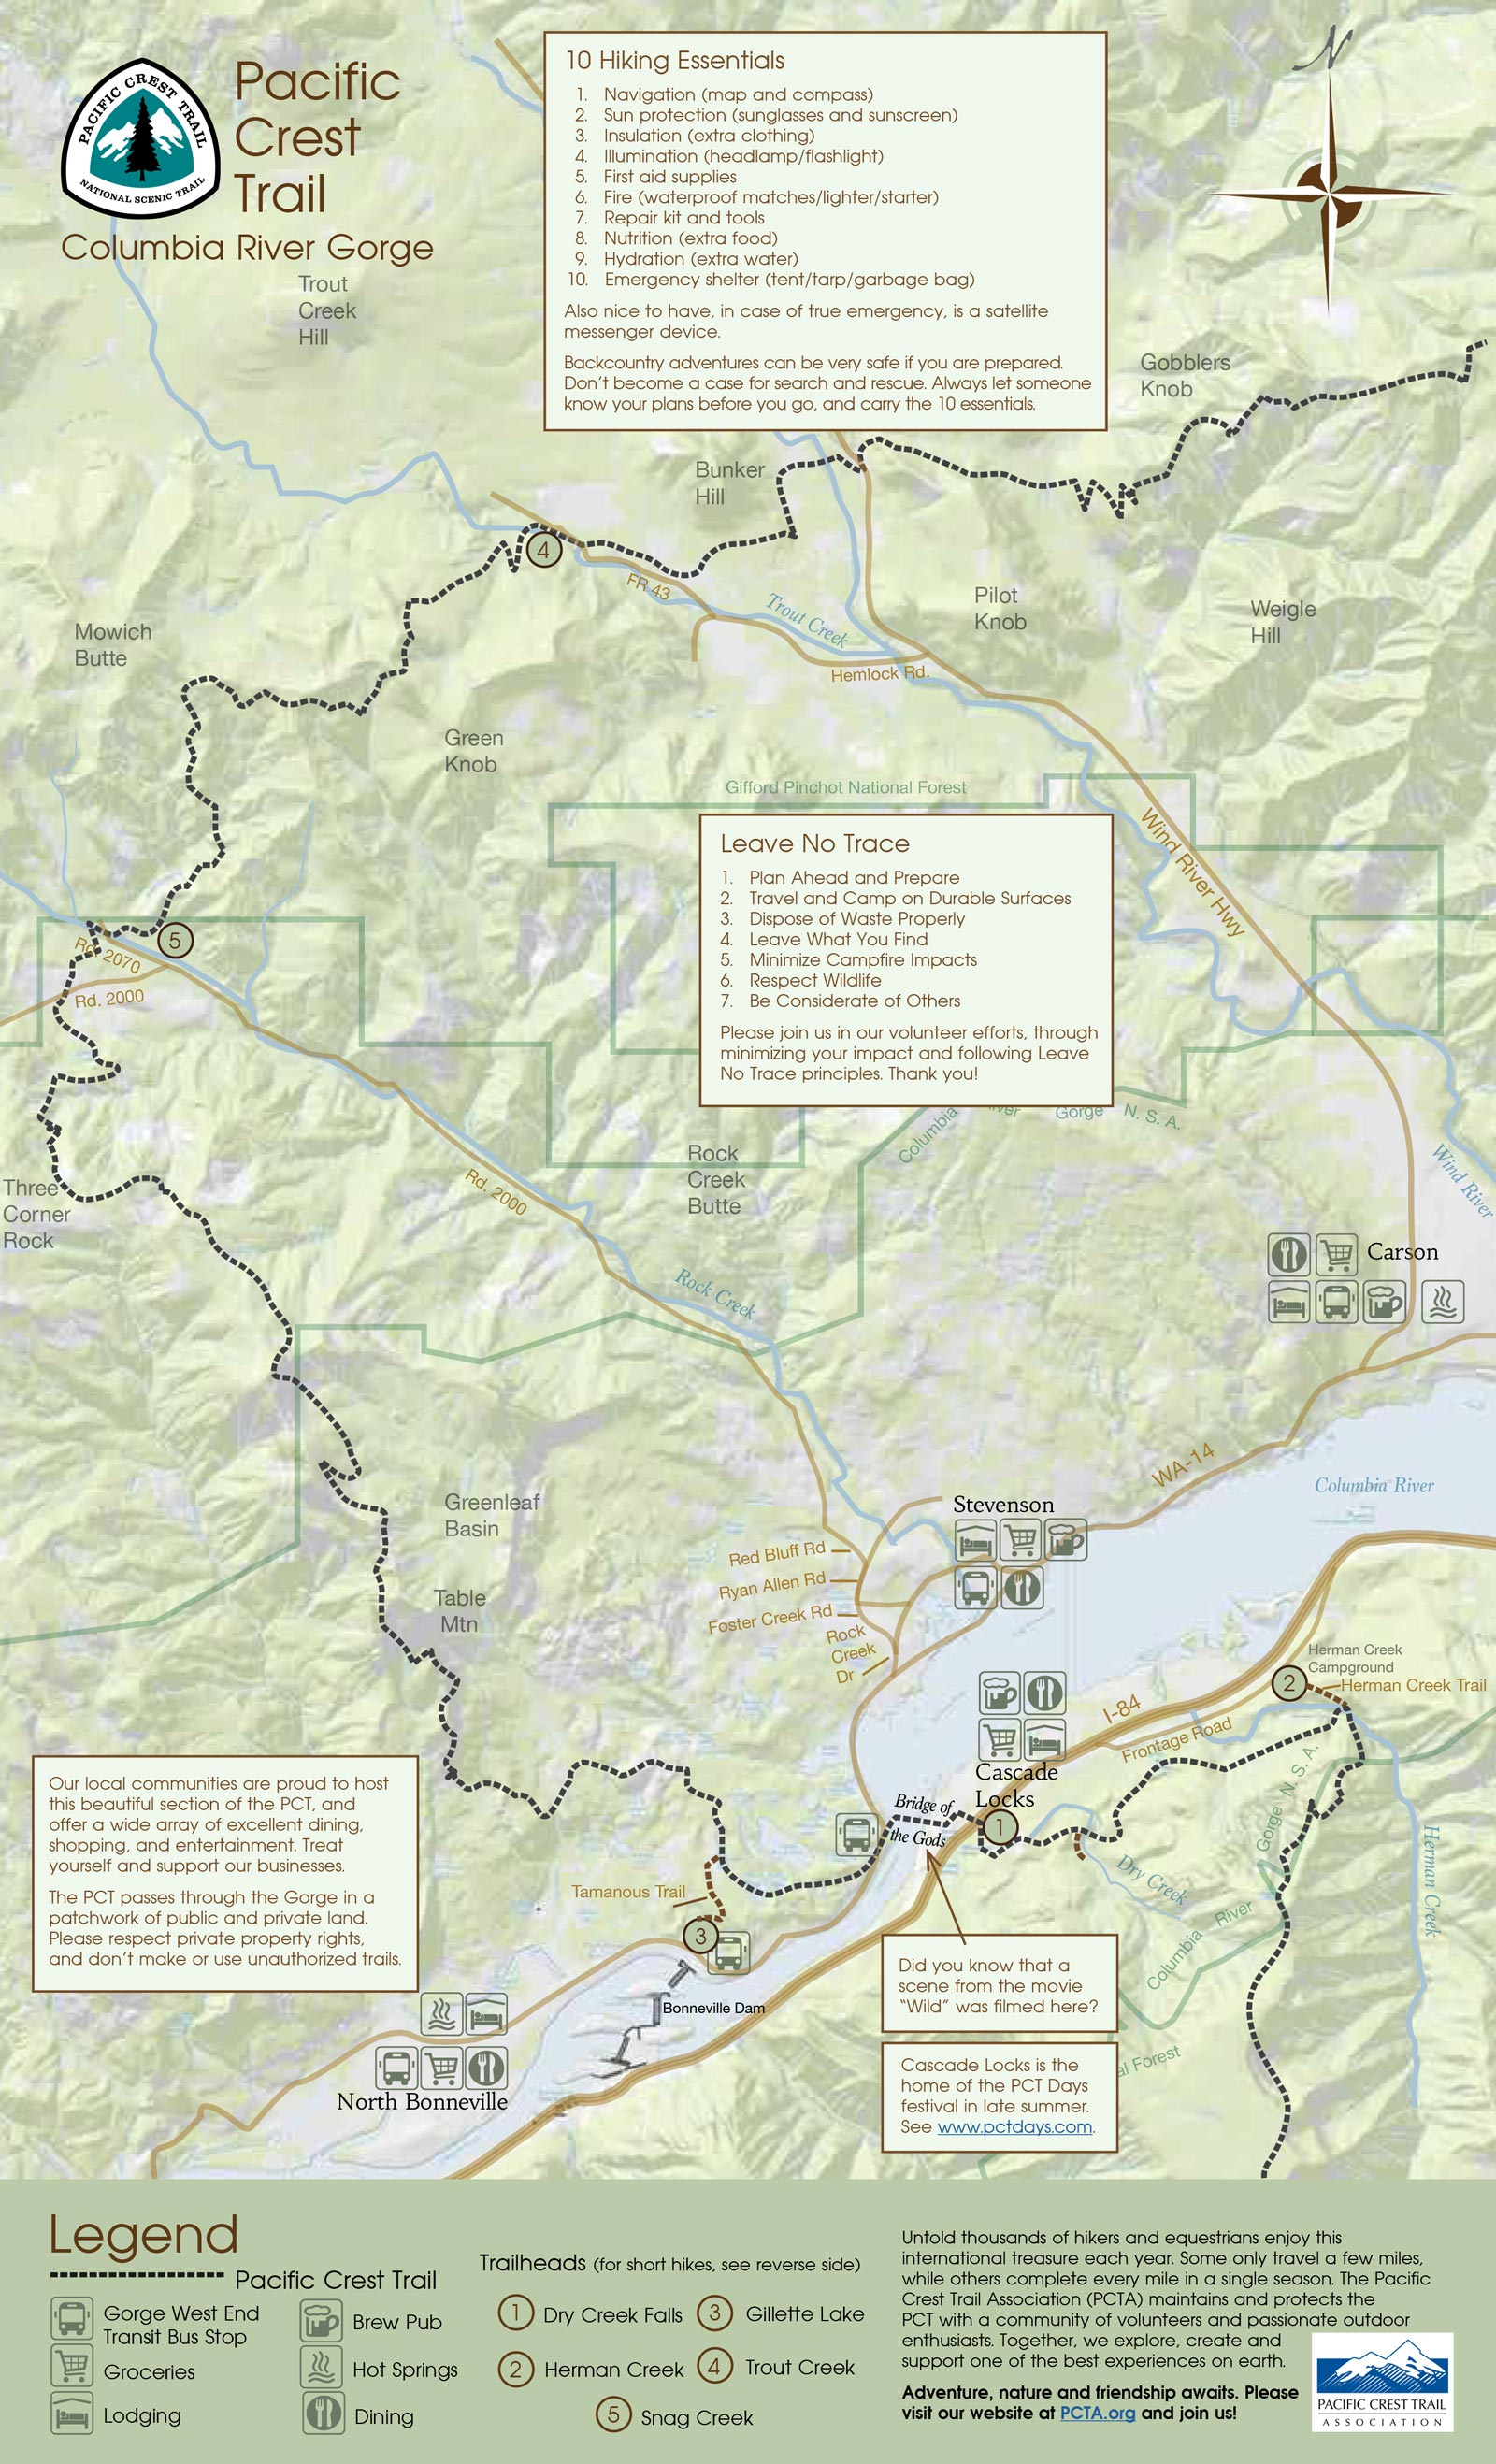 Free map of pacific crest trail in columbia river gorge click here for a high resolution g gumiabroncs Images